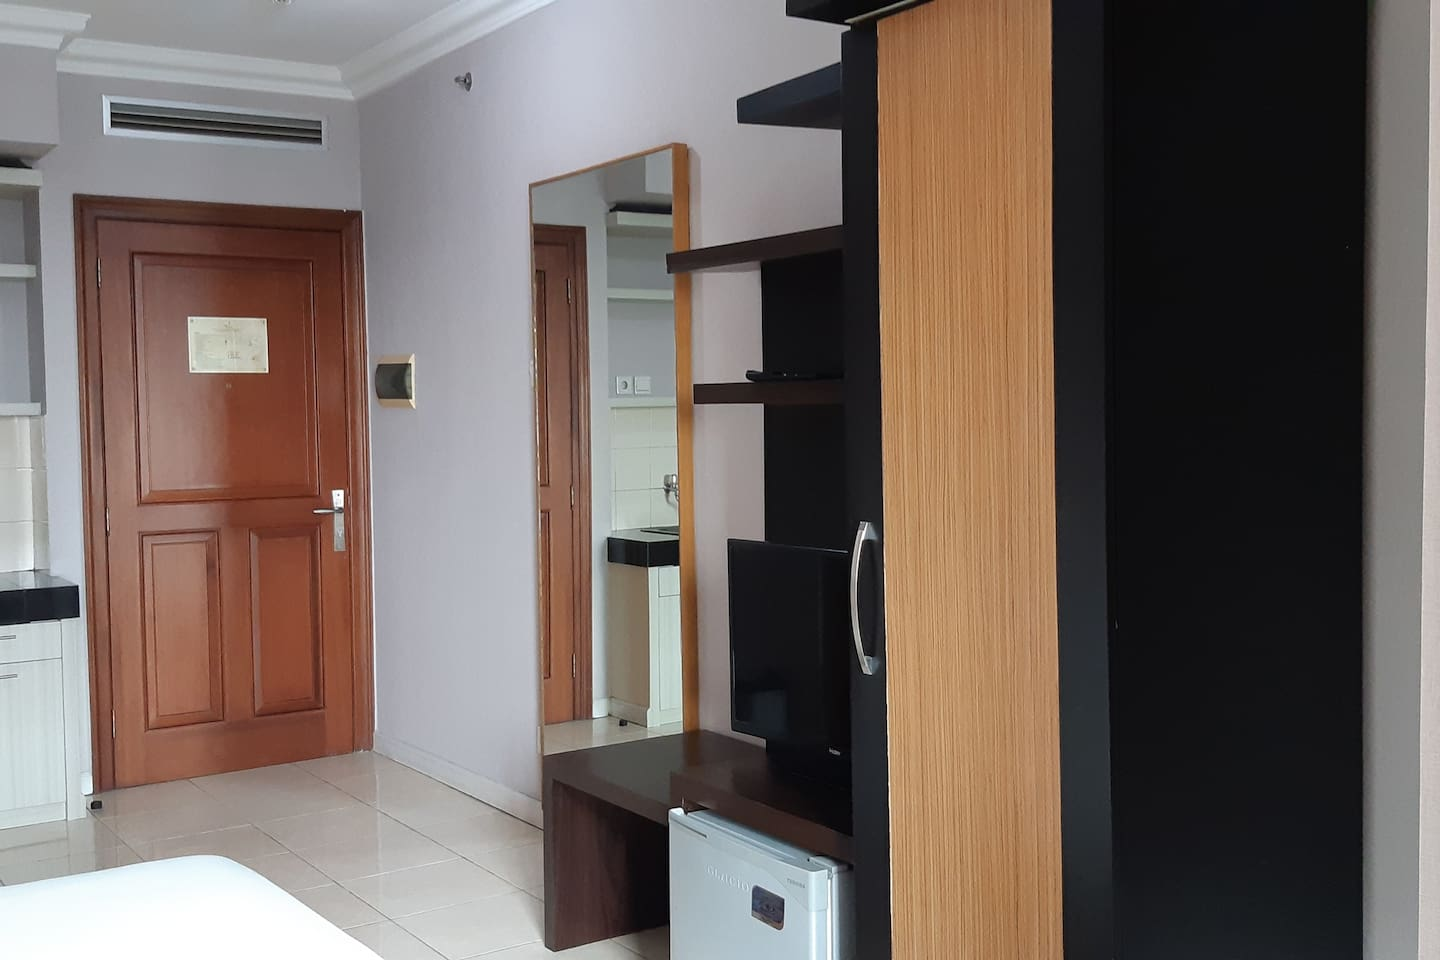 G Stbdi -newly refurnished studio at popular place